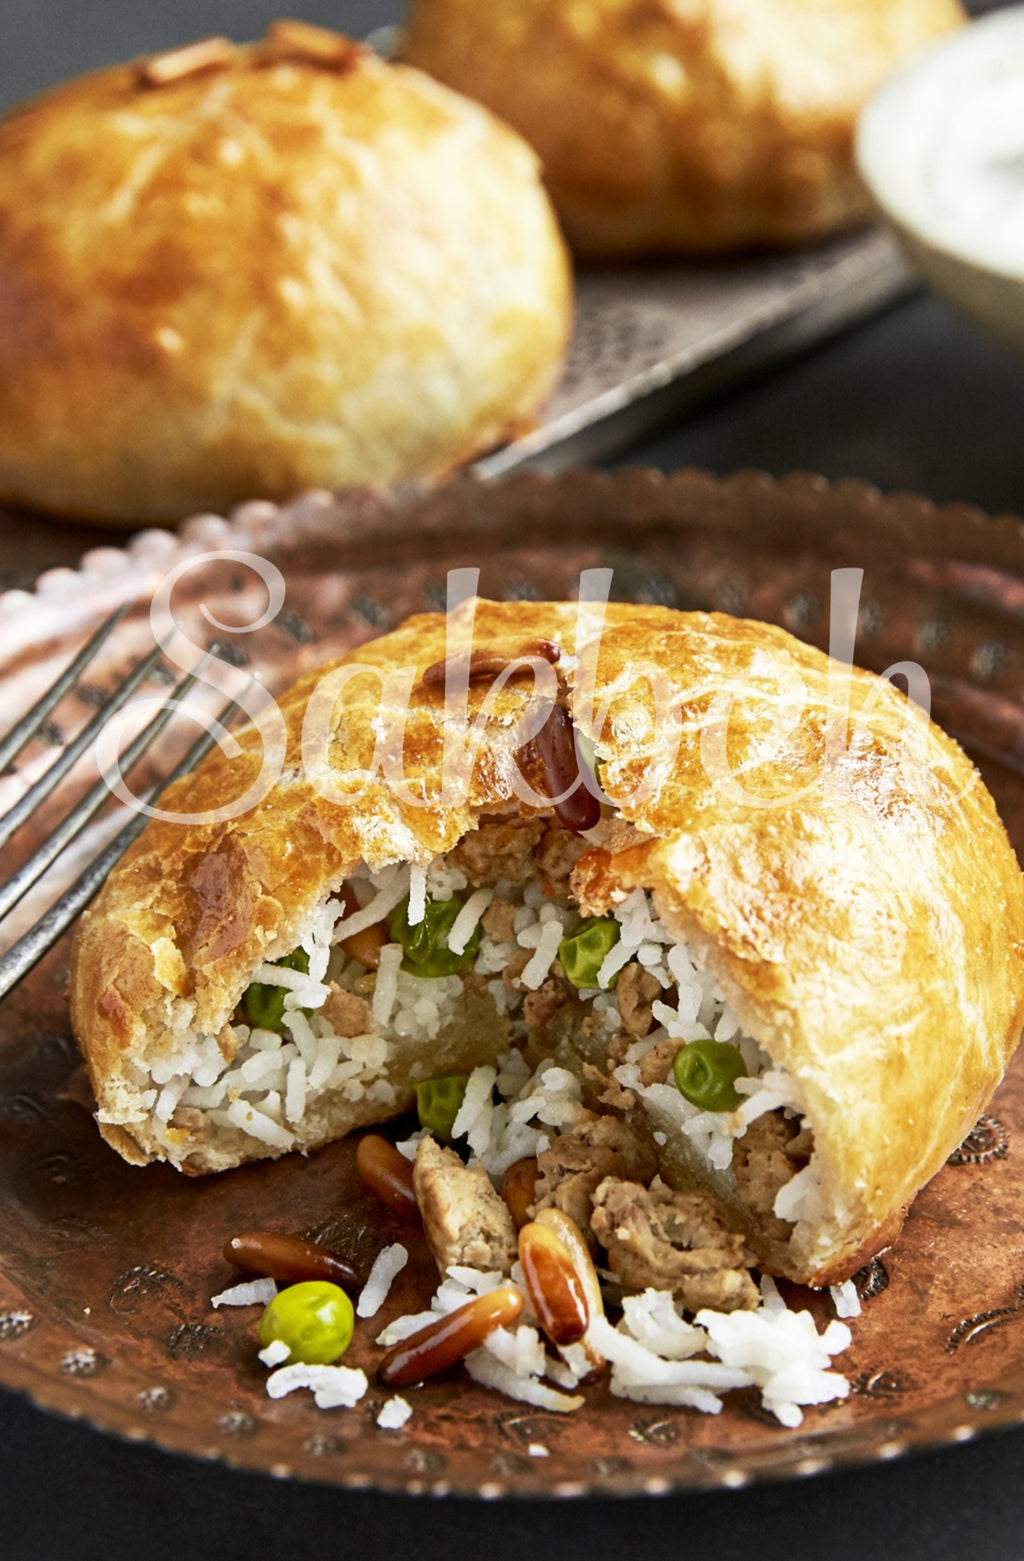 Oozi - Filo crust filled with rice, peas and lamb shank chunks